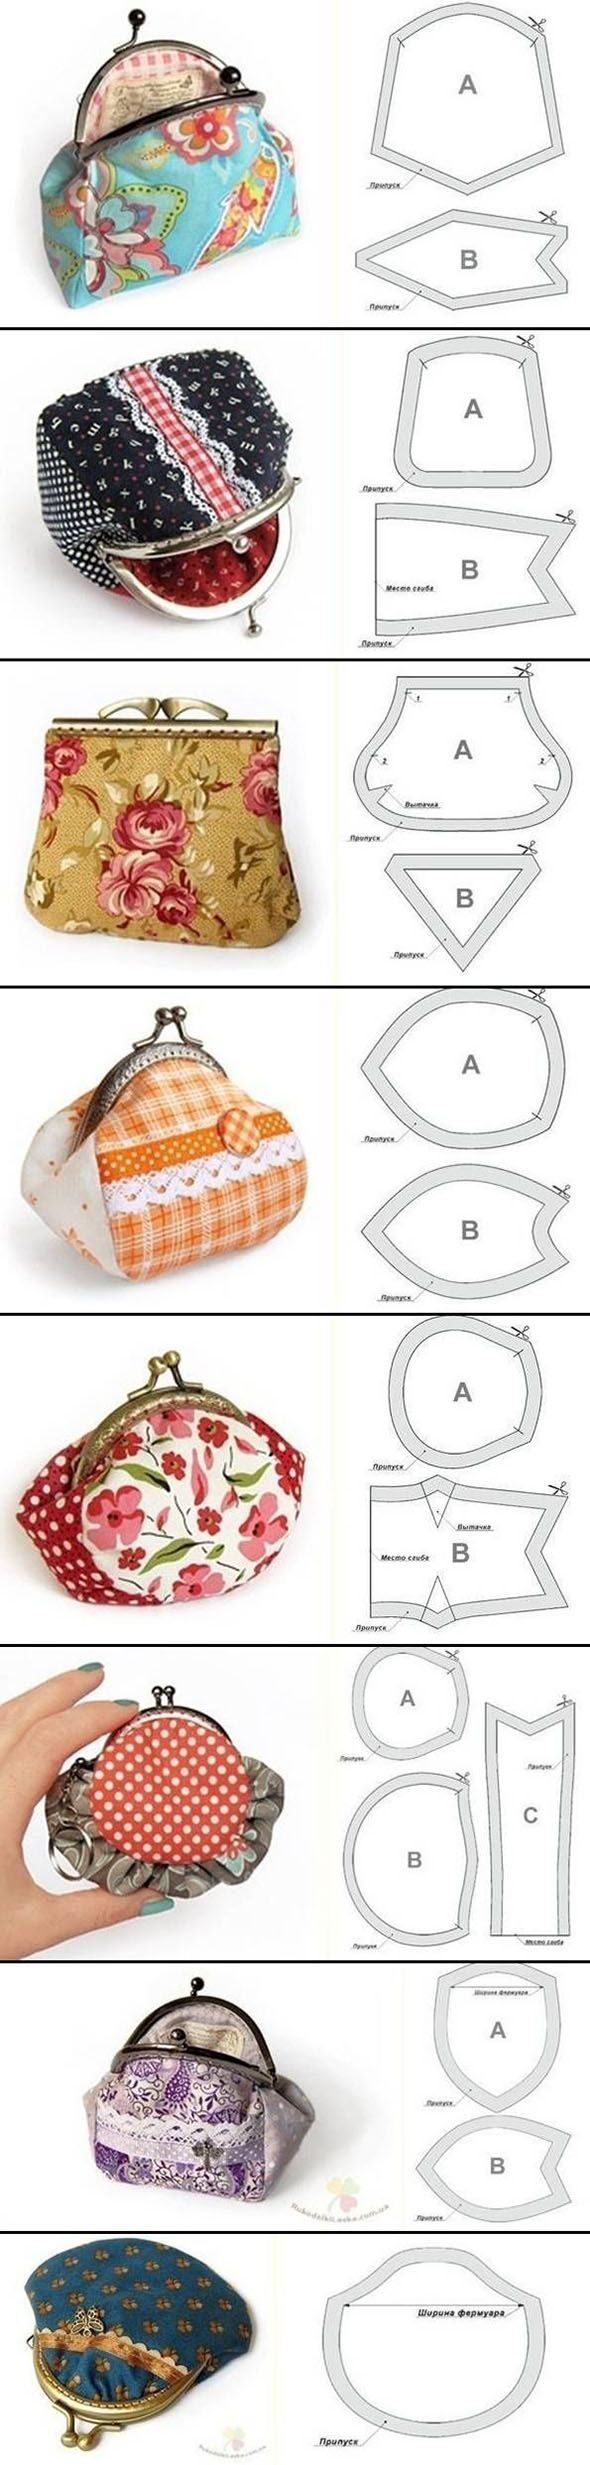 Cute Purse Templates | DIY & Crafts Tutorials